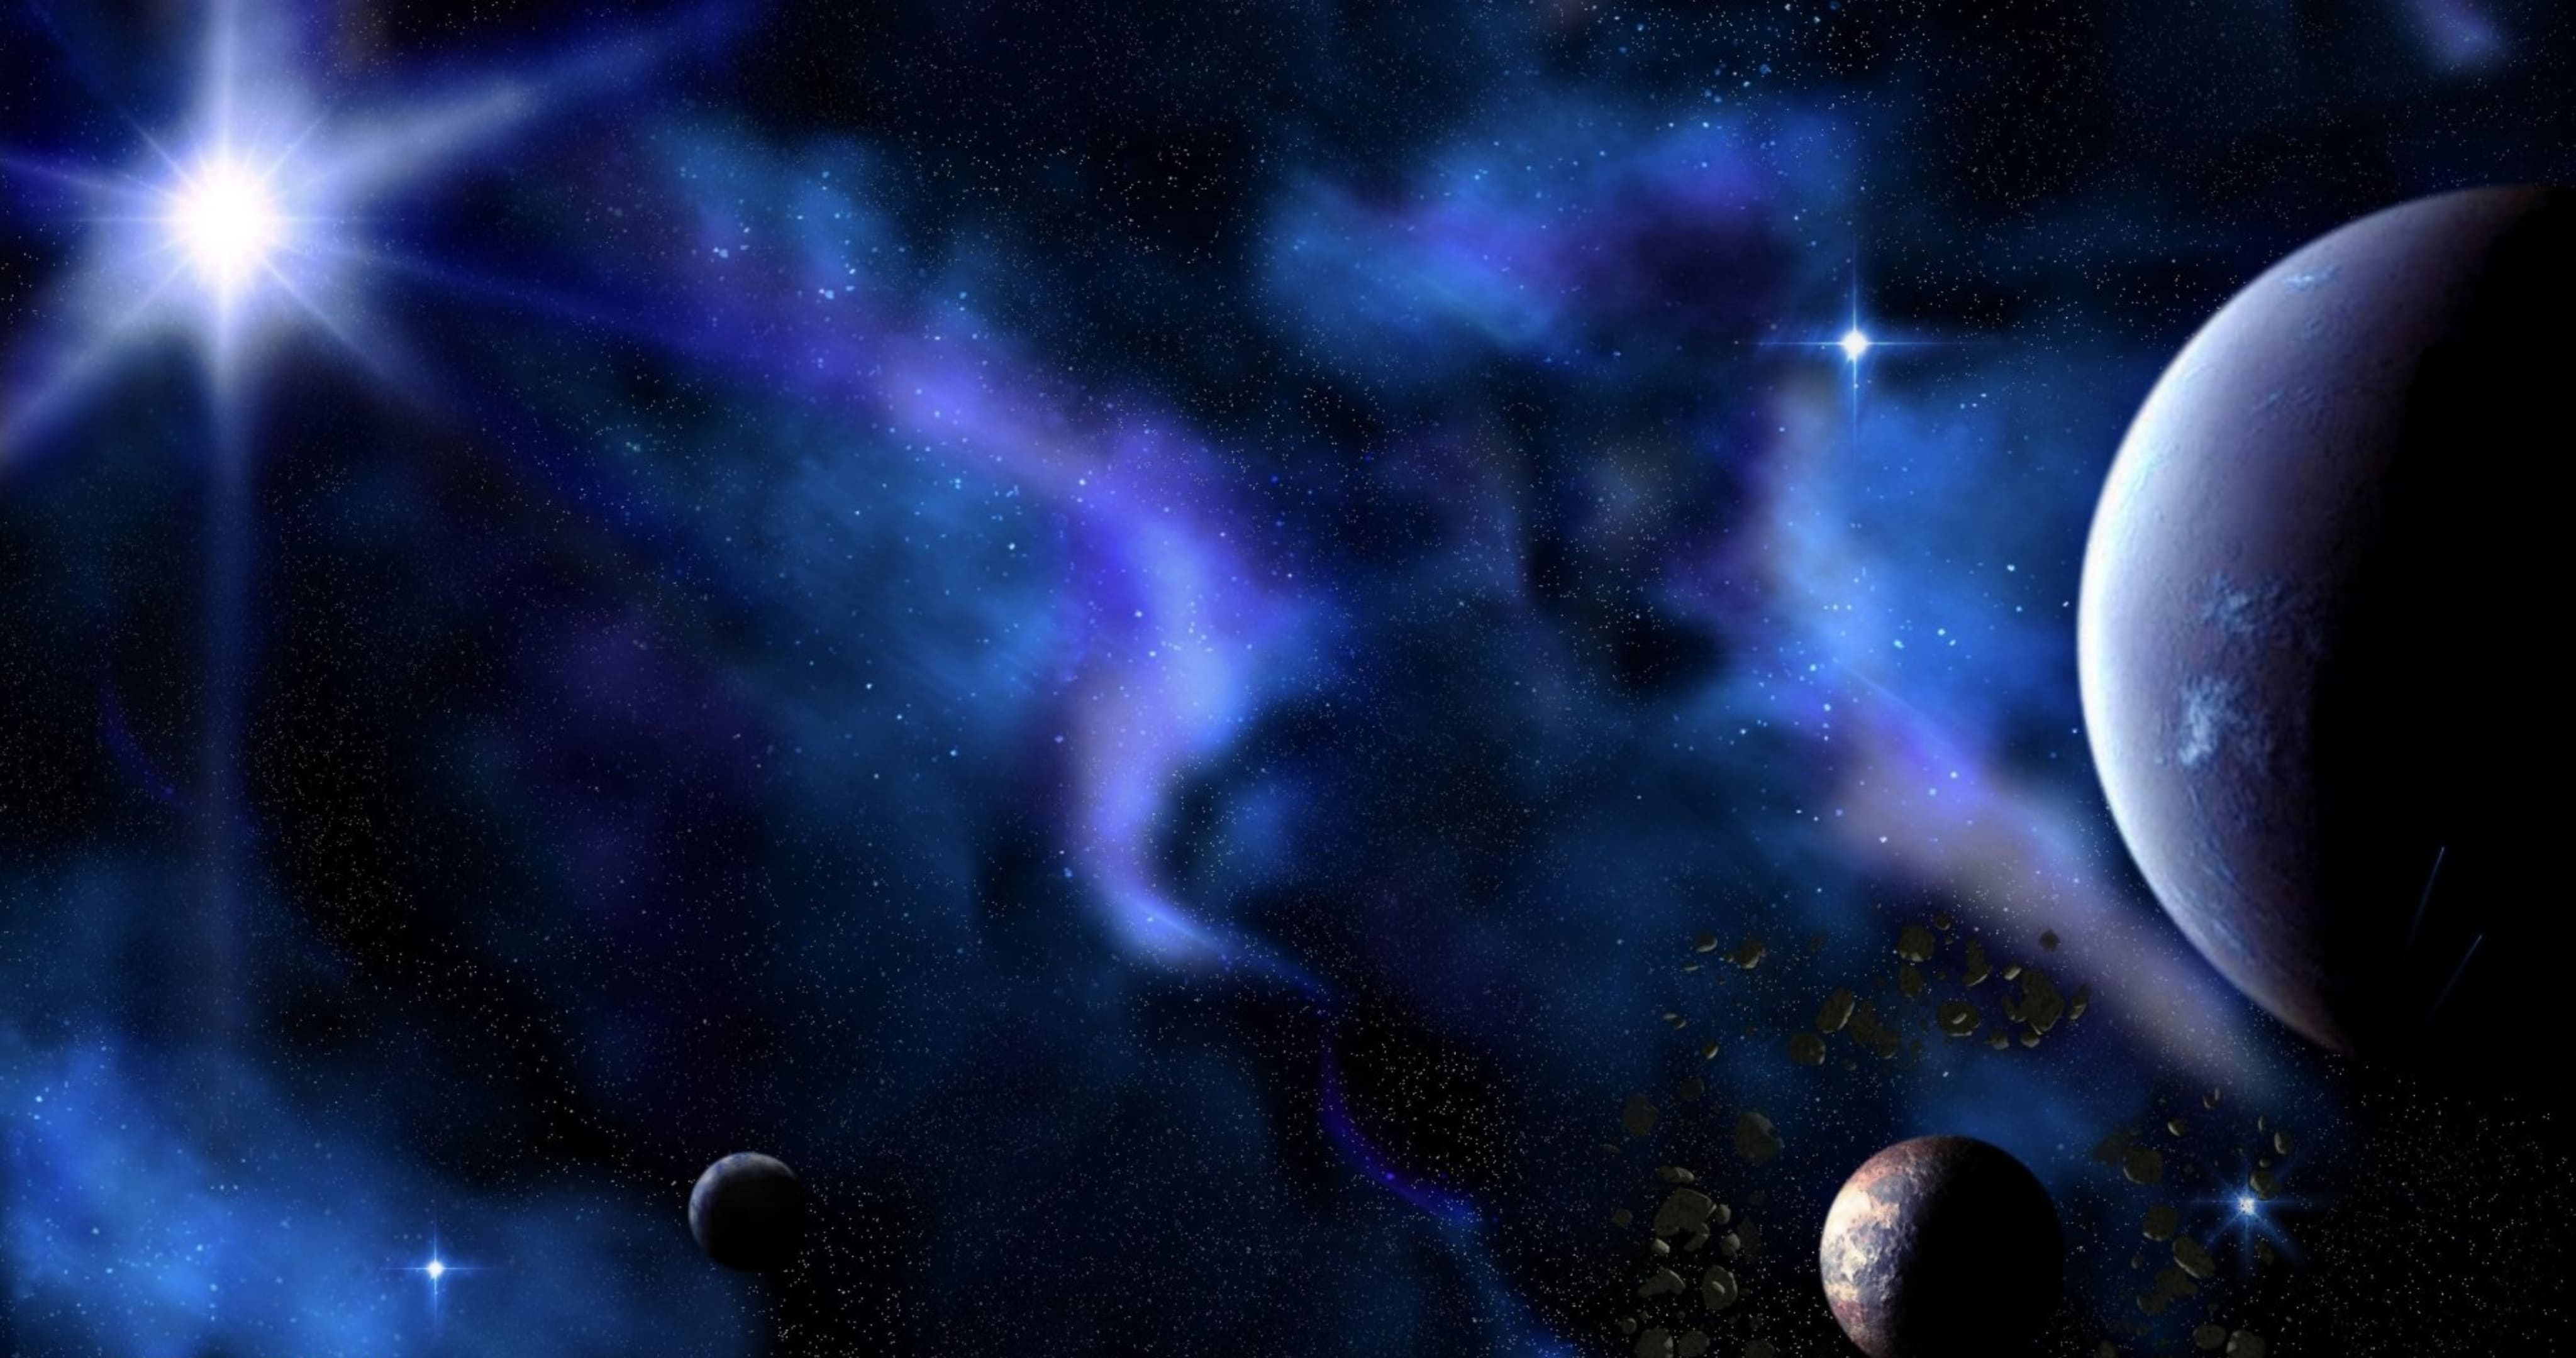 space wallpapers 4k